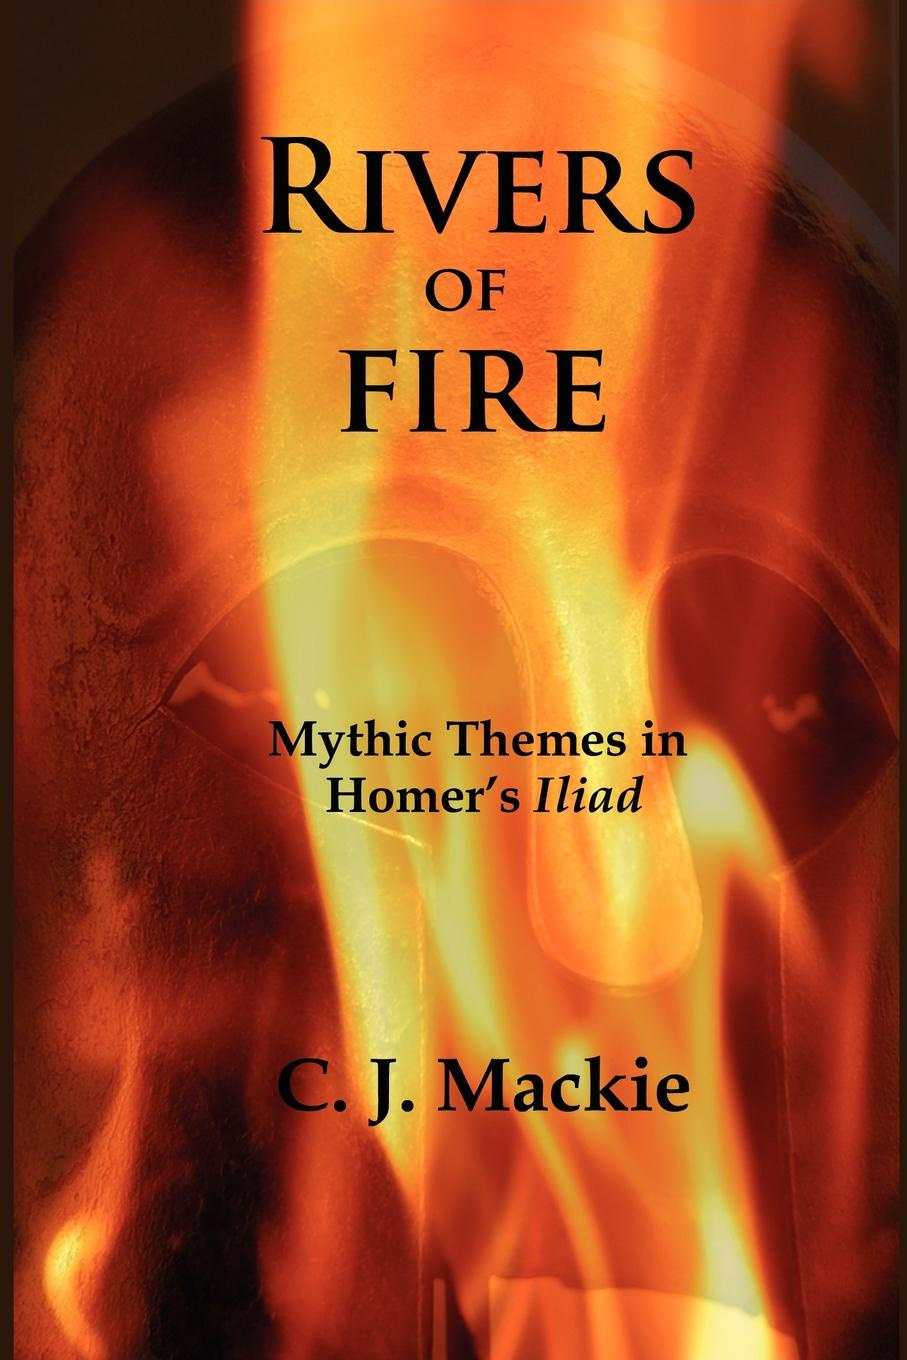 Christopher J. MacKie, C. J. MacKie Rivers of Fire. Mythic Themes in Homer.s Iliad